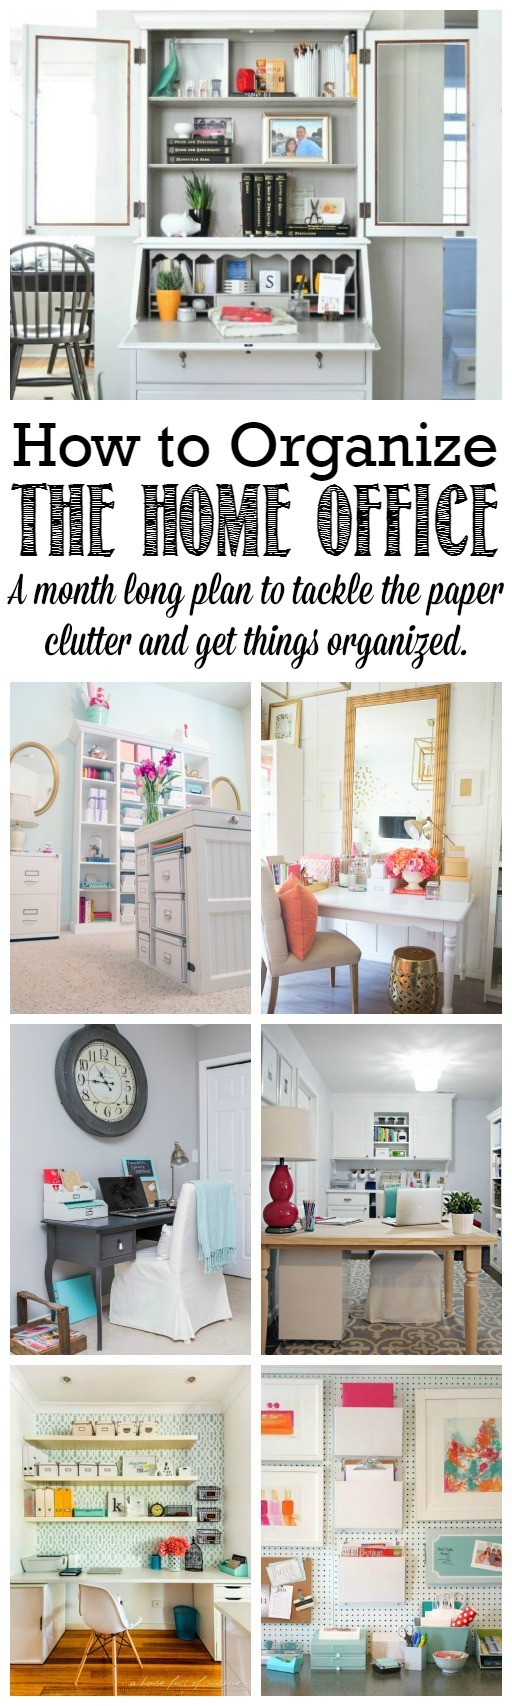 how to organize the home office hod march printables clean and scentsible. Black Bedroom Furniture Sets. Home Design Ideas